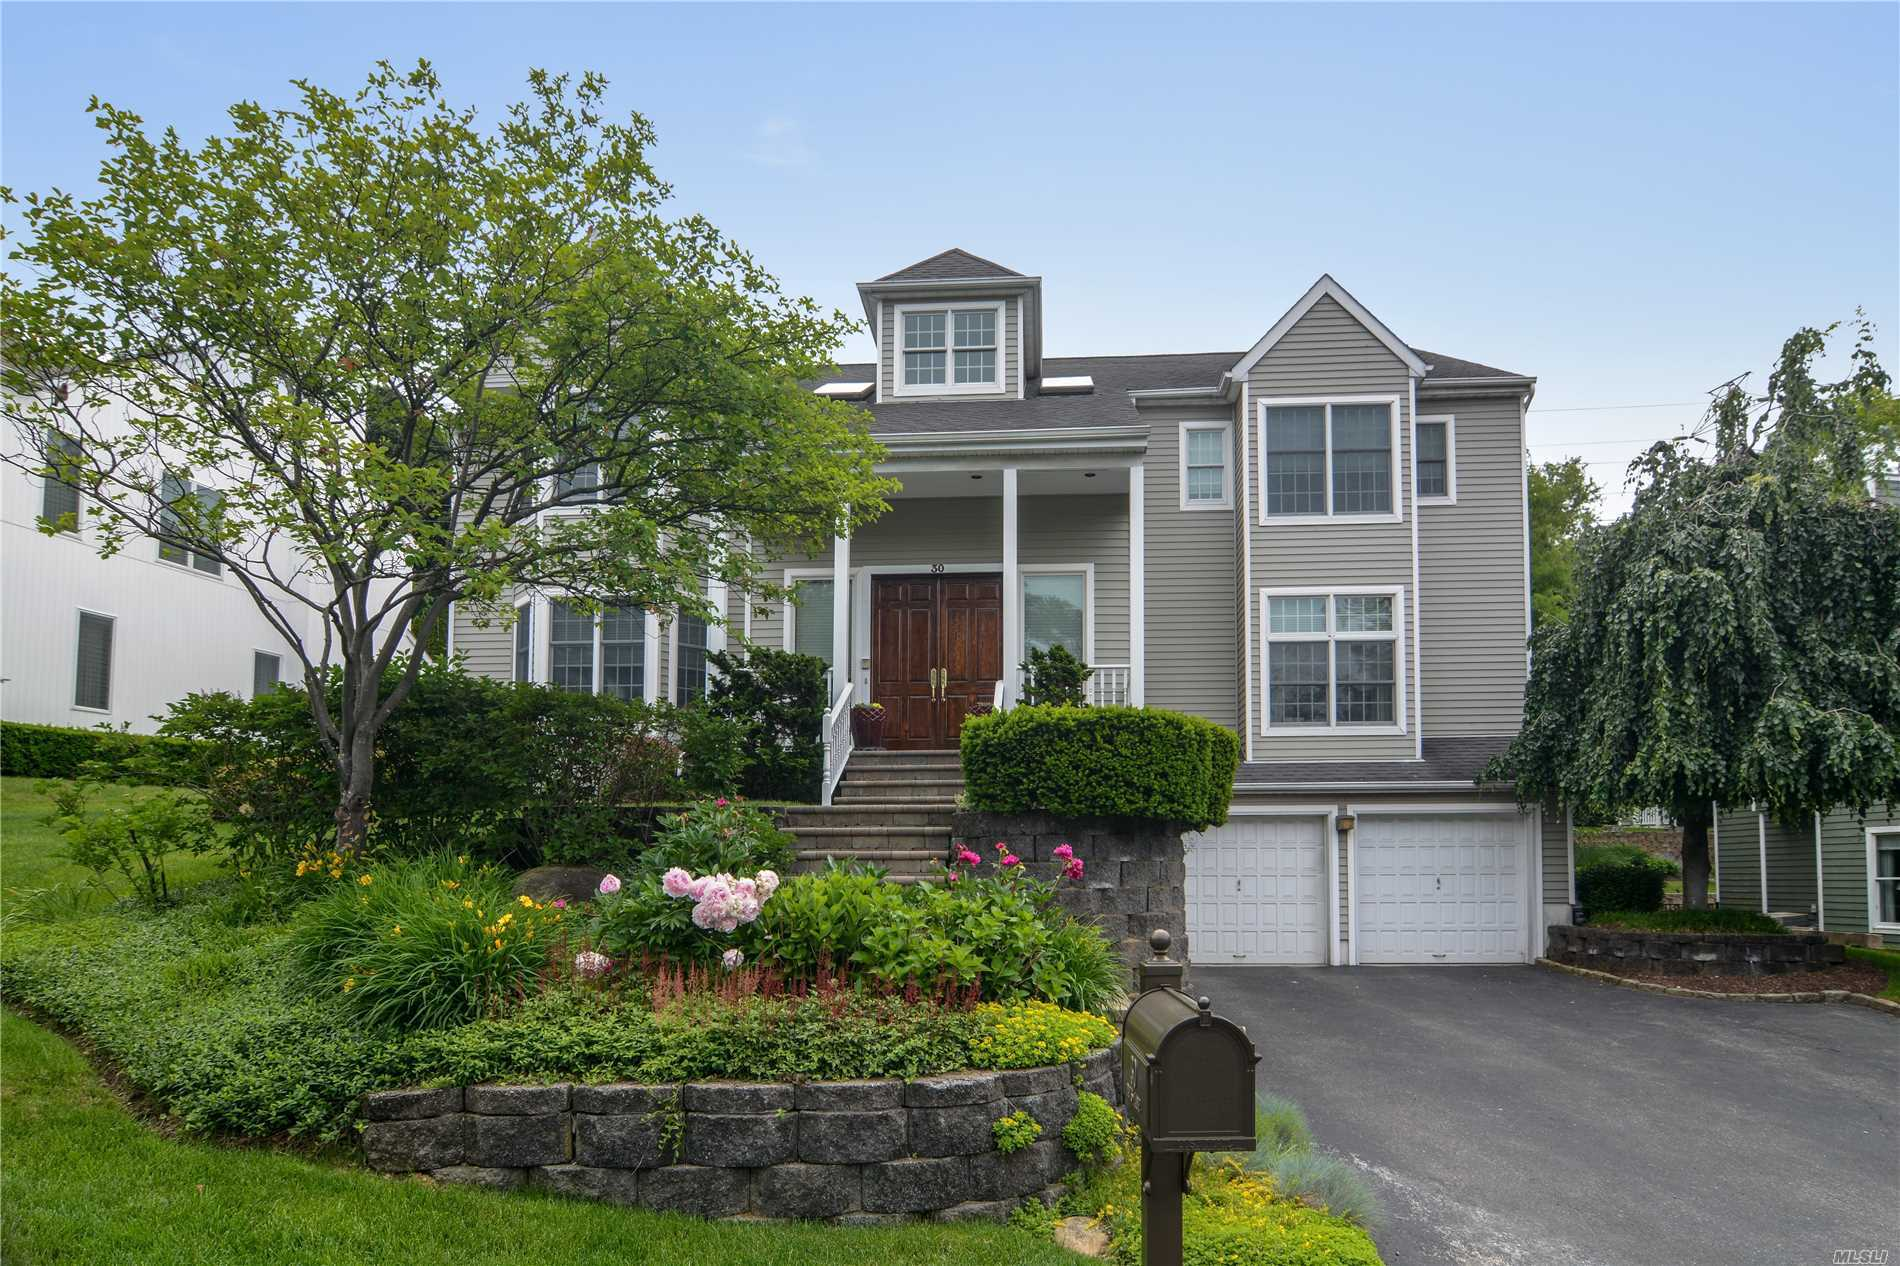 Roslyn. The One You Have Been Waiting For! Move Right In To This Renovated And Exceptional Home On A Beautiful Tree Lined Street Featuring A 2-Story Entry, Soaring Ceilings Throughout, All Large Formal Rooms For Entertaining, State Of The Art Designer Kitchen, Lavish Baths, Formal Living Room With Gas Fireplace, Hardwood Floors, Finished Basement, Spectacular Gated Backyard With Kitchen/Waterfall/Hot Tub. New Heat, Ac, Electric, Hot Water Heater. Truly Special!